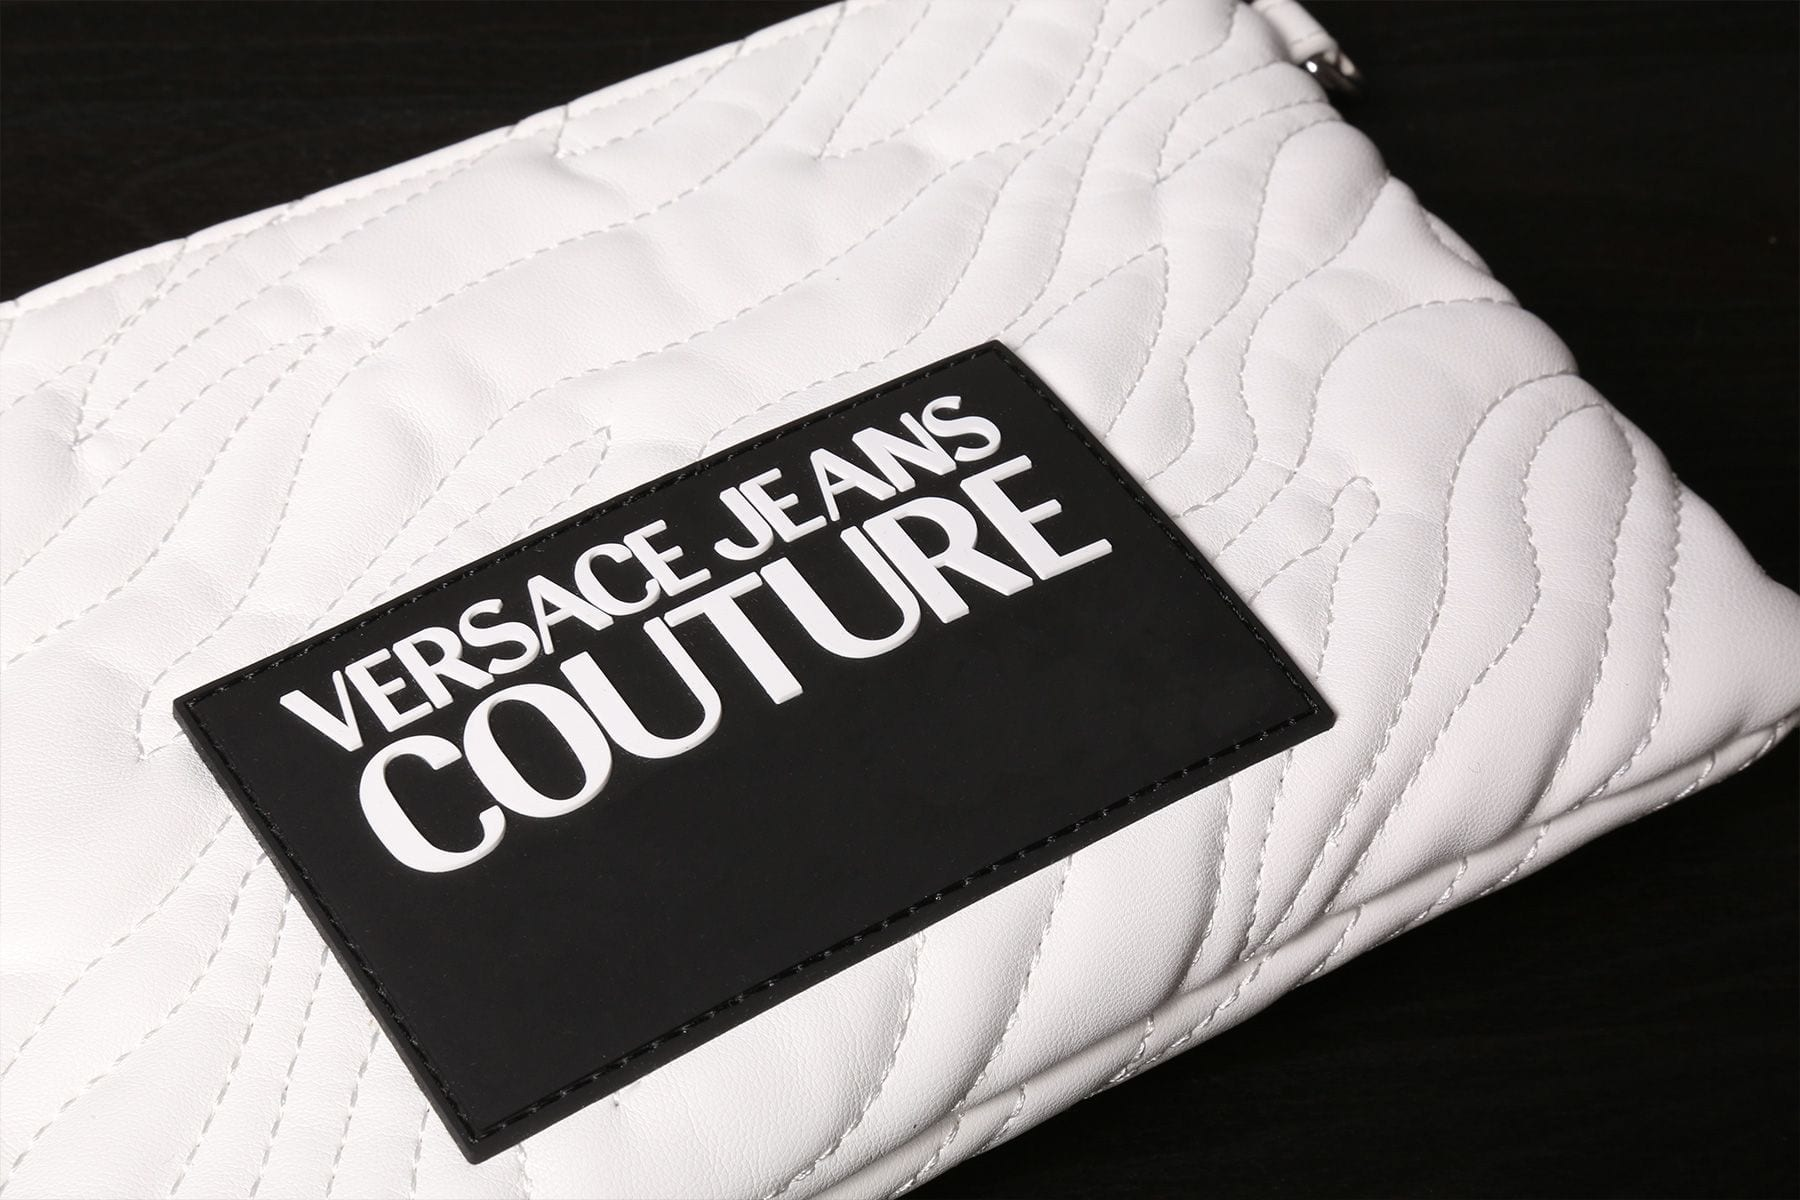 What's the difference between Versace and Versace Couture